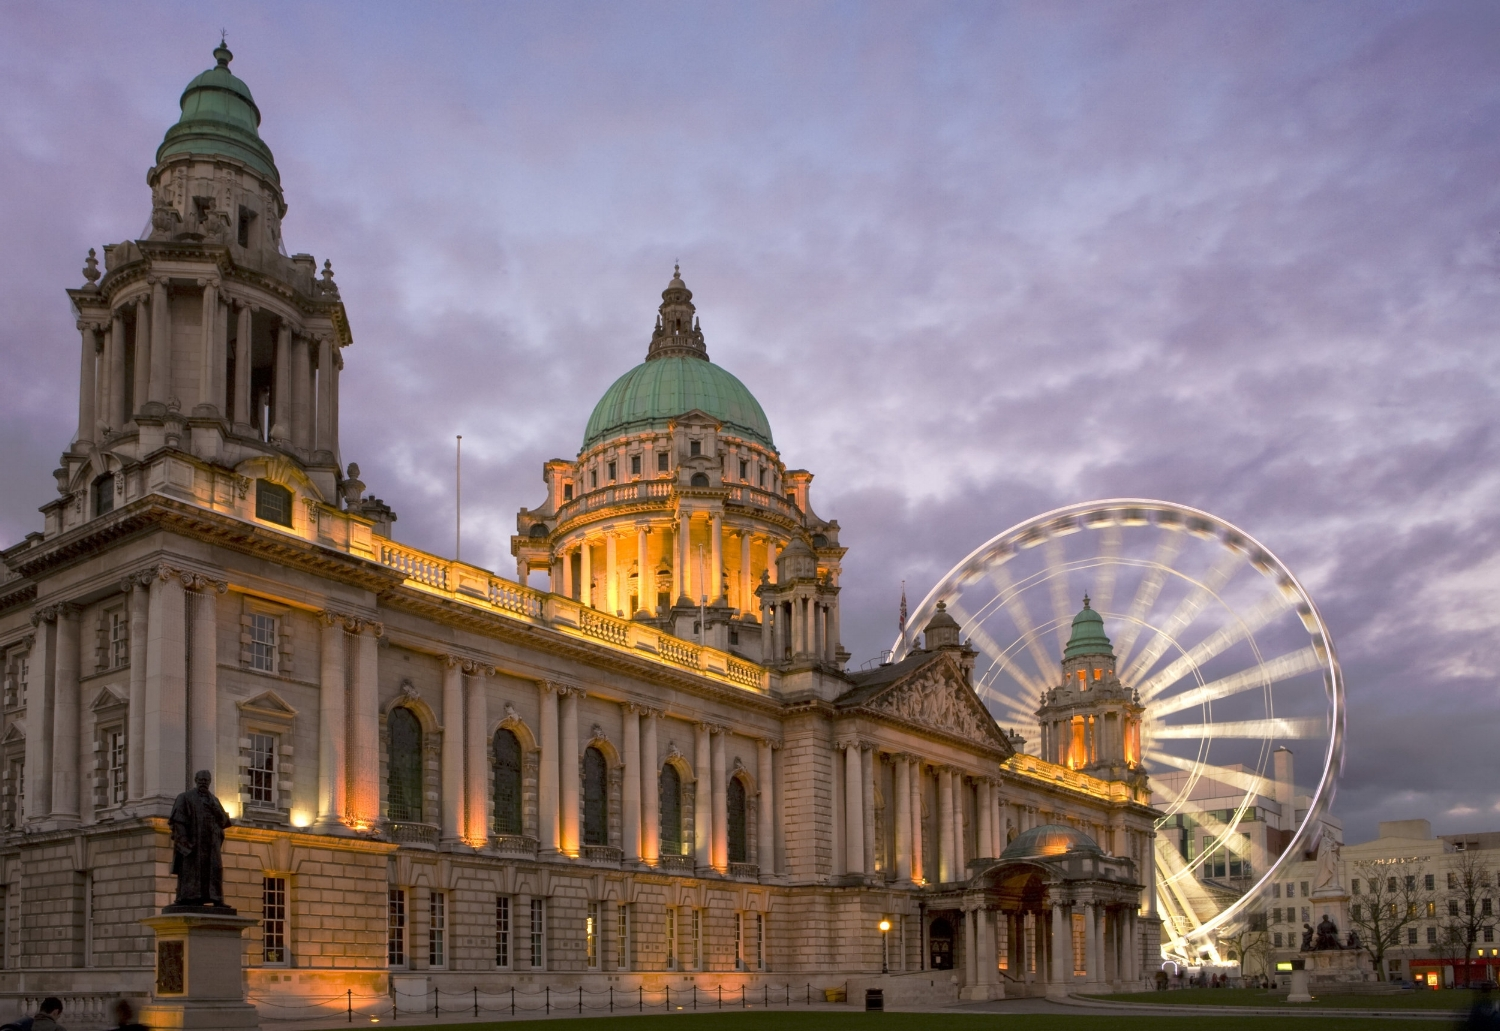 Belfast (Northern Ireland's Capital) - In recent years Belfast has made a remarkable transformation, though once shunned by visitors unnerved by tales of the